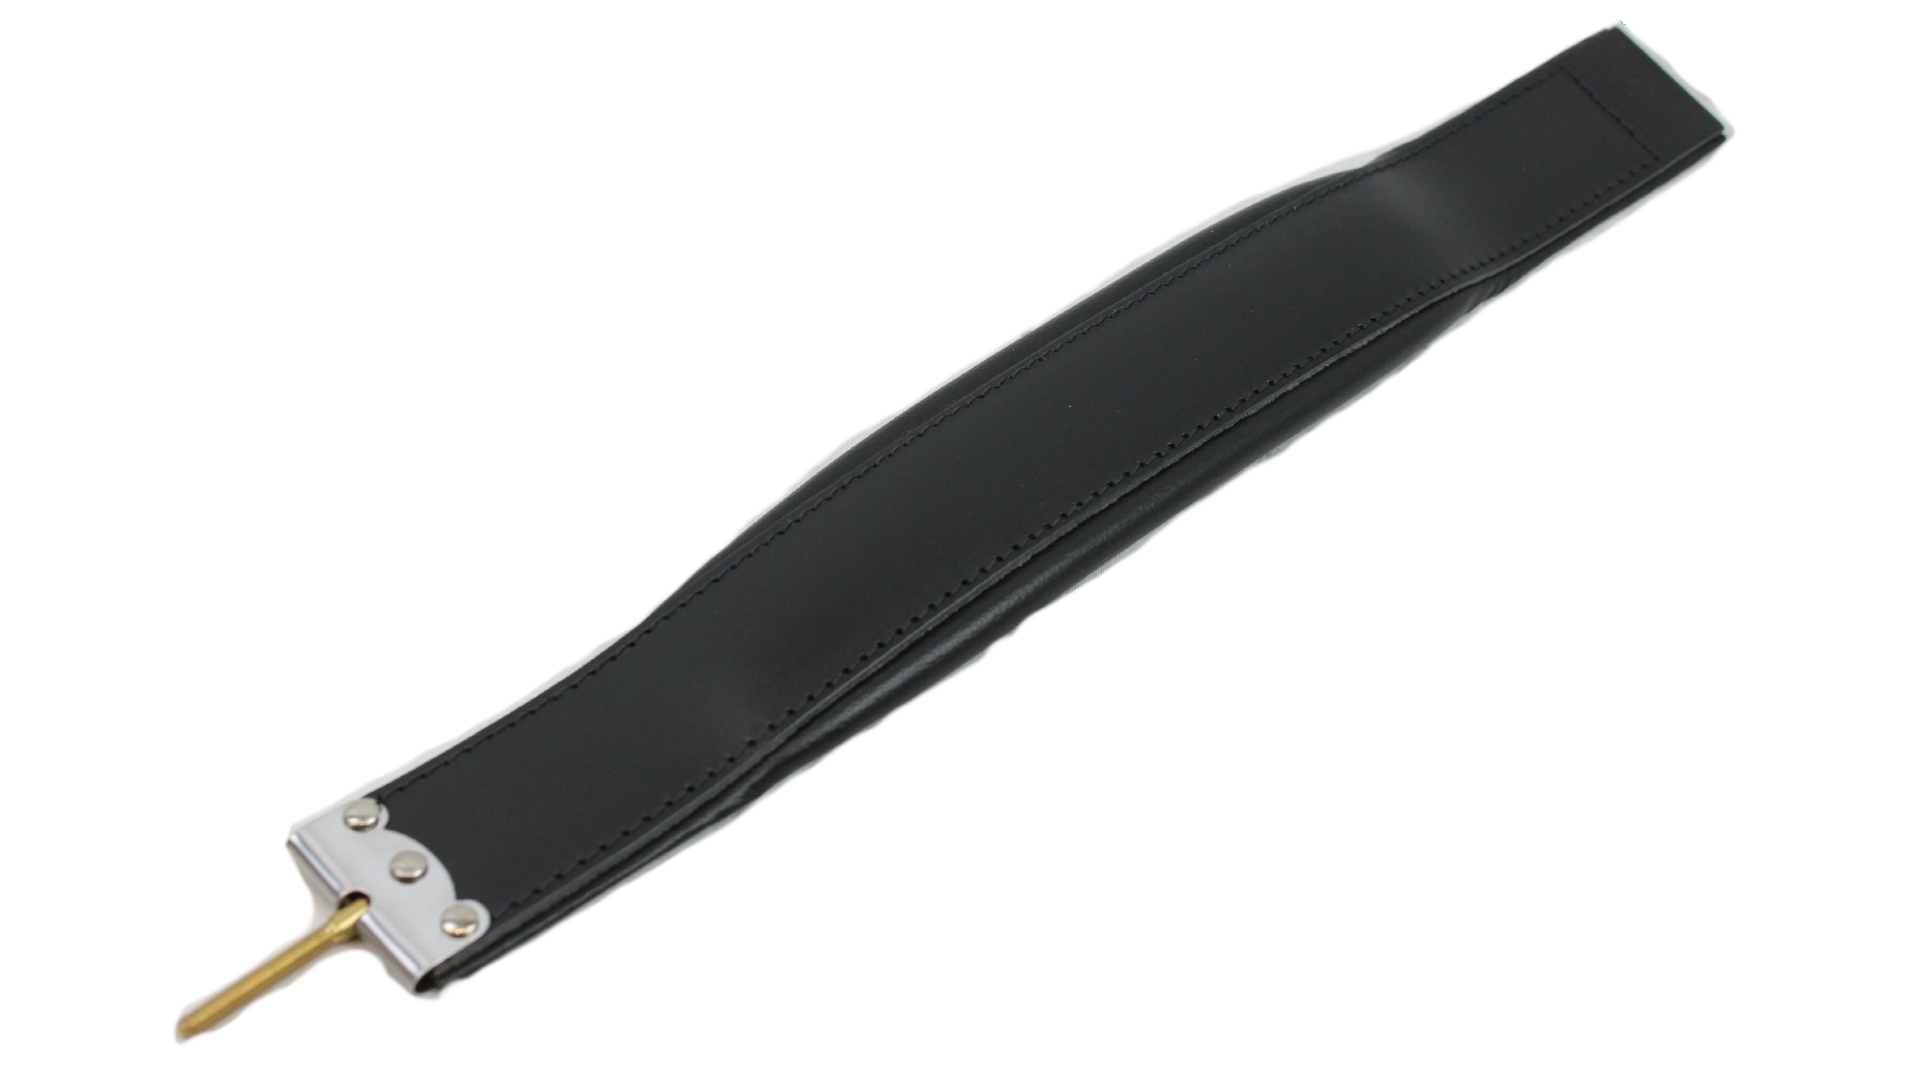 New Black Leather Fuselli Accordion Bass Hand Strap Width (2.5in/6.5cm) Length (21.5in/55cm)